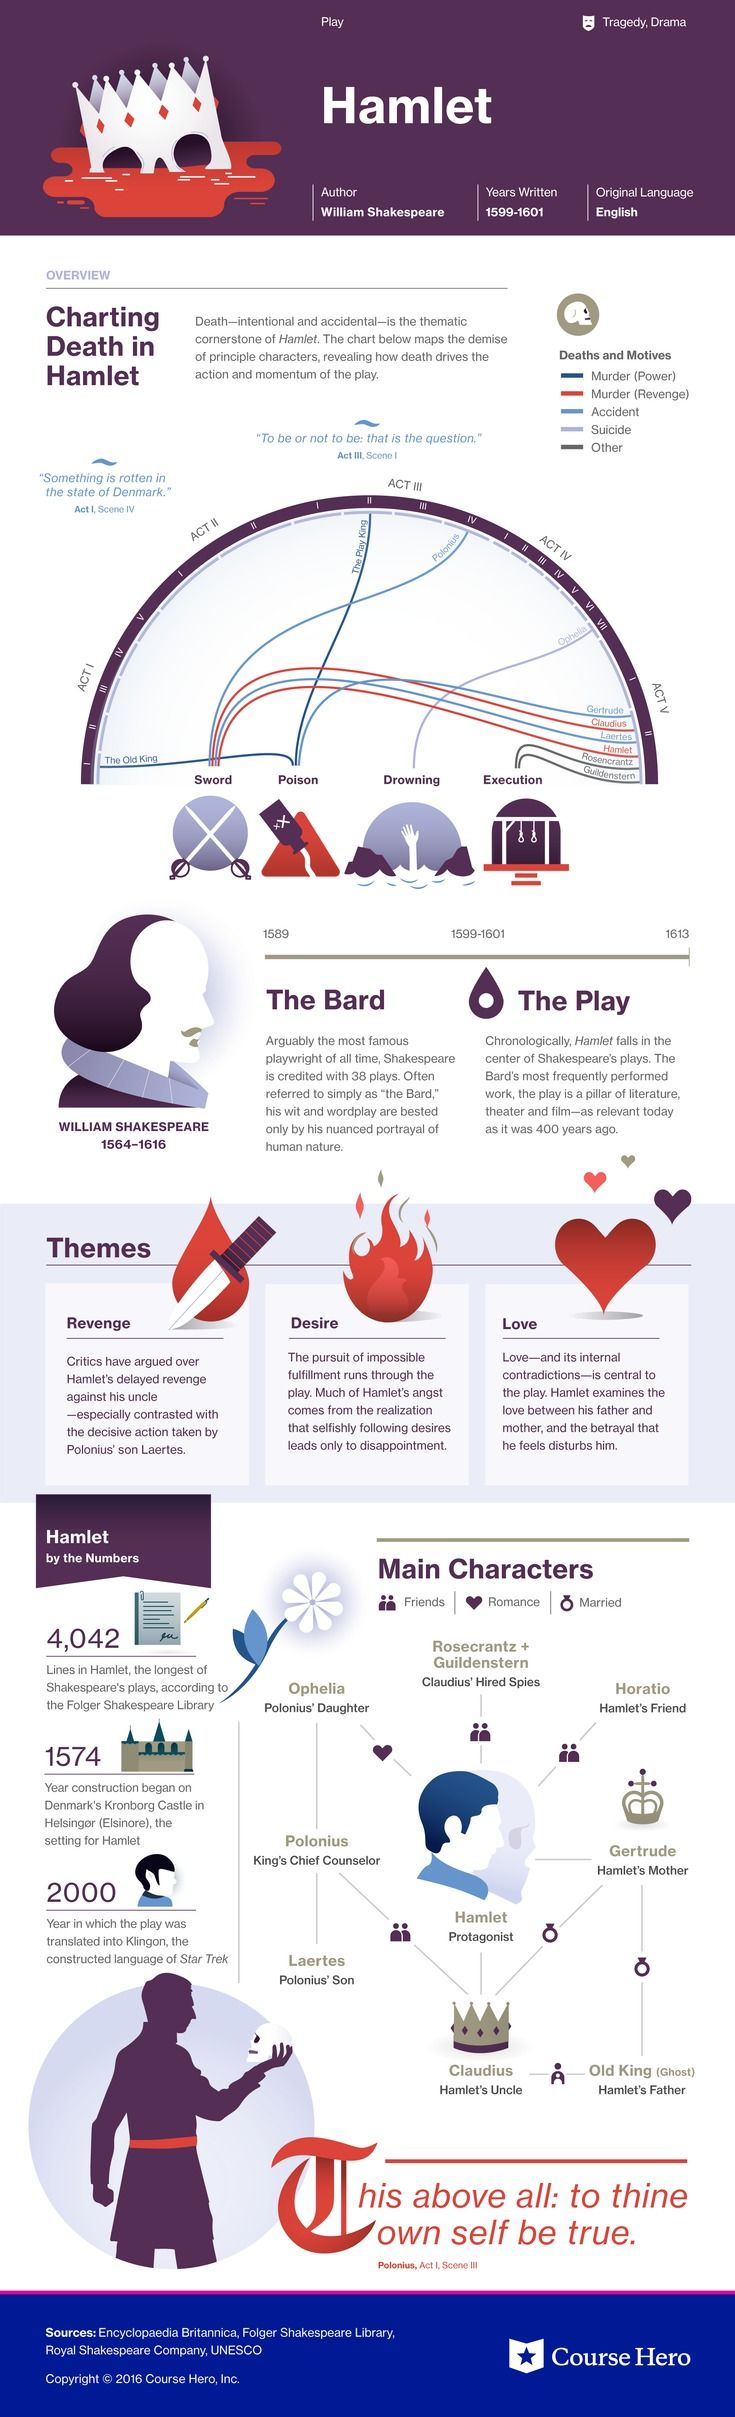 This @CourseHero infographic on Hamlet is both visually stunning and informative!